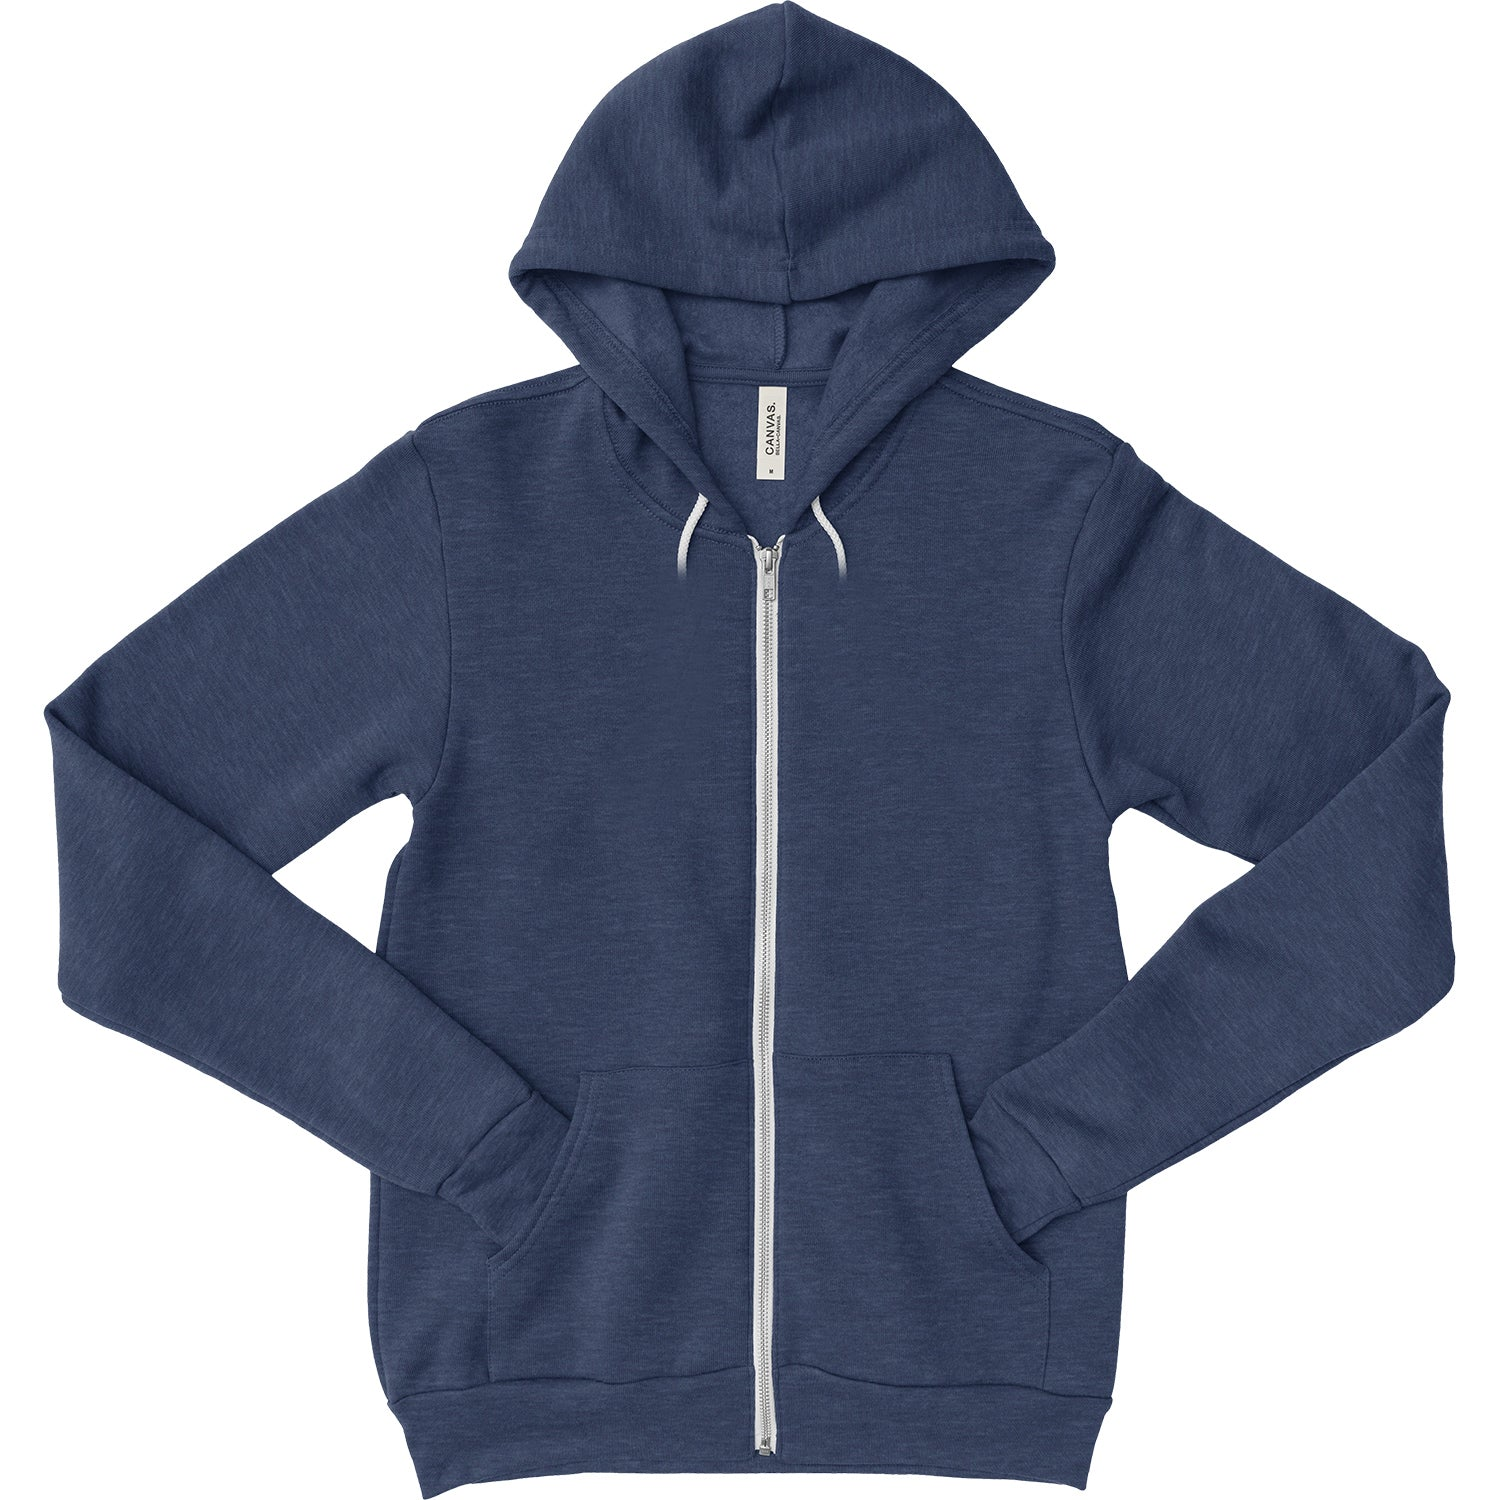 Unisex Zipper Dual Blend Fleece Hoodie - Heather Navy